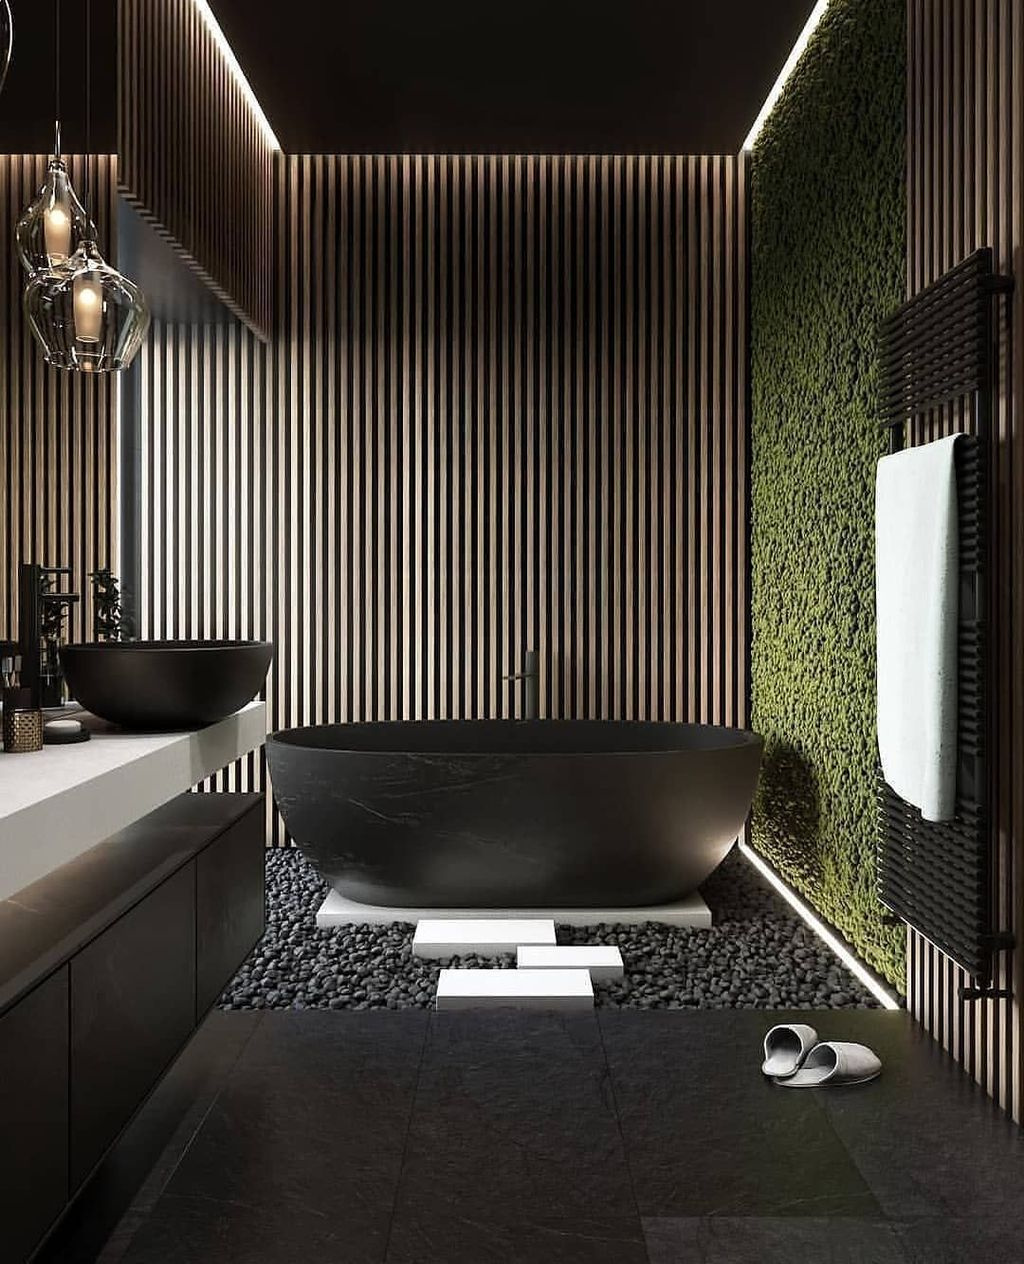 Luxury Bathroom Design And Decor Ideas 28